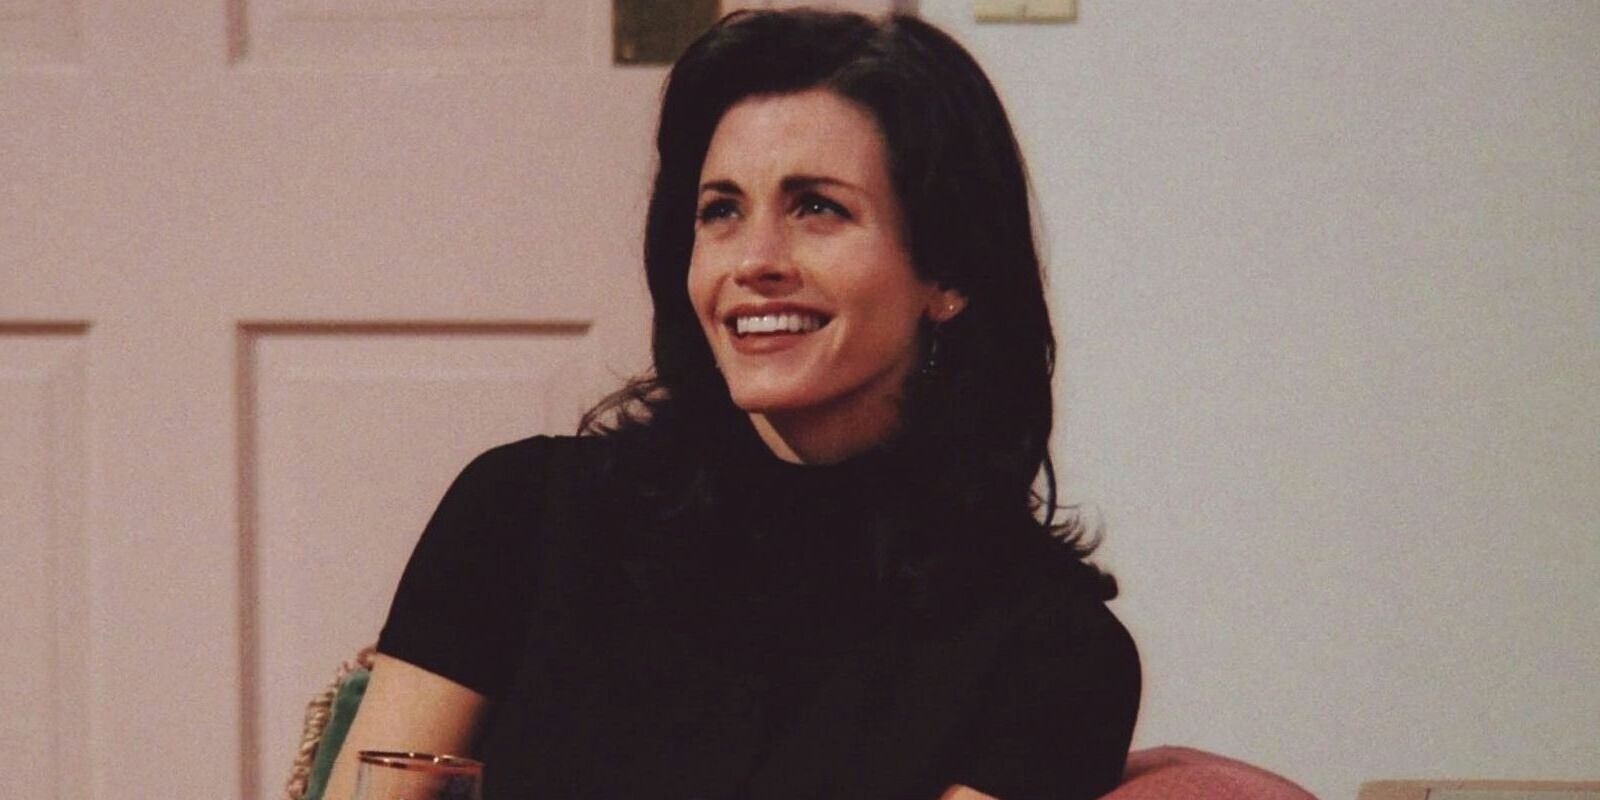 Friends Star Courteney Cox Reveals She's A Monica In Real Life